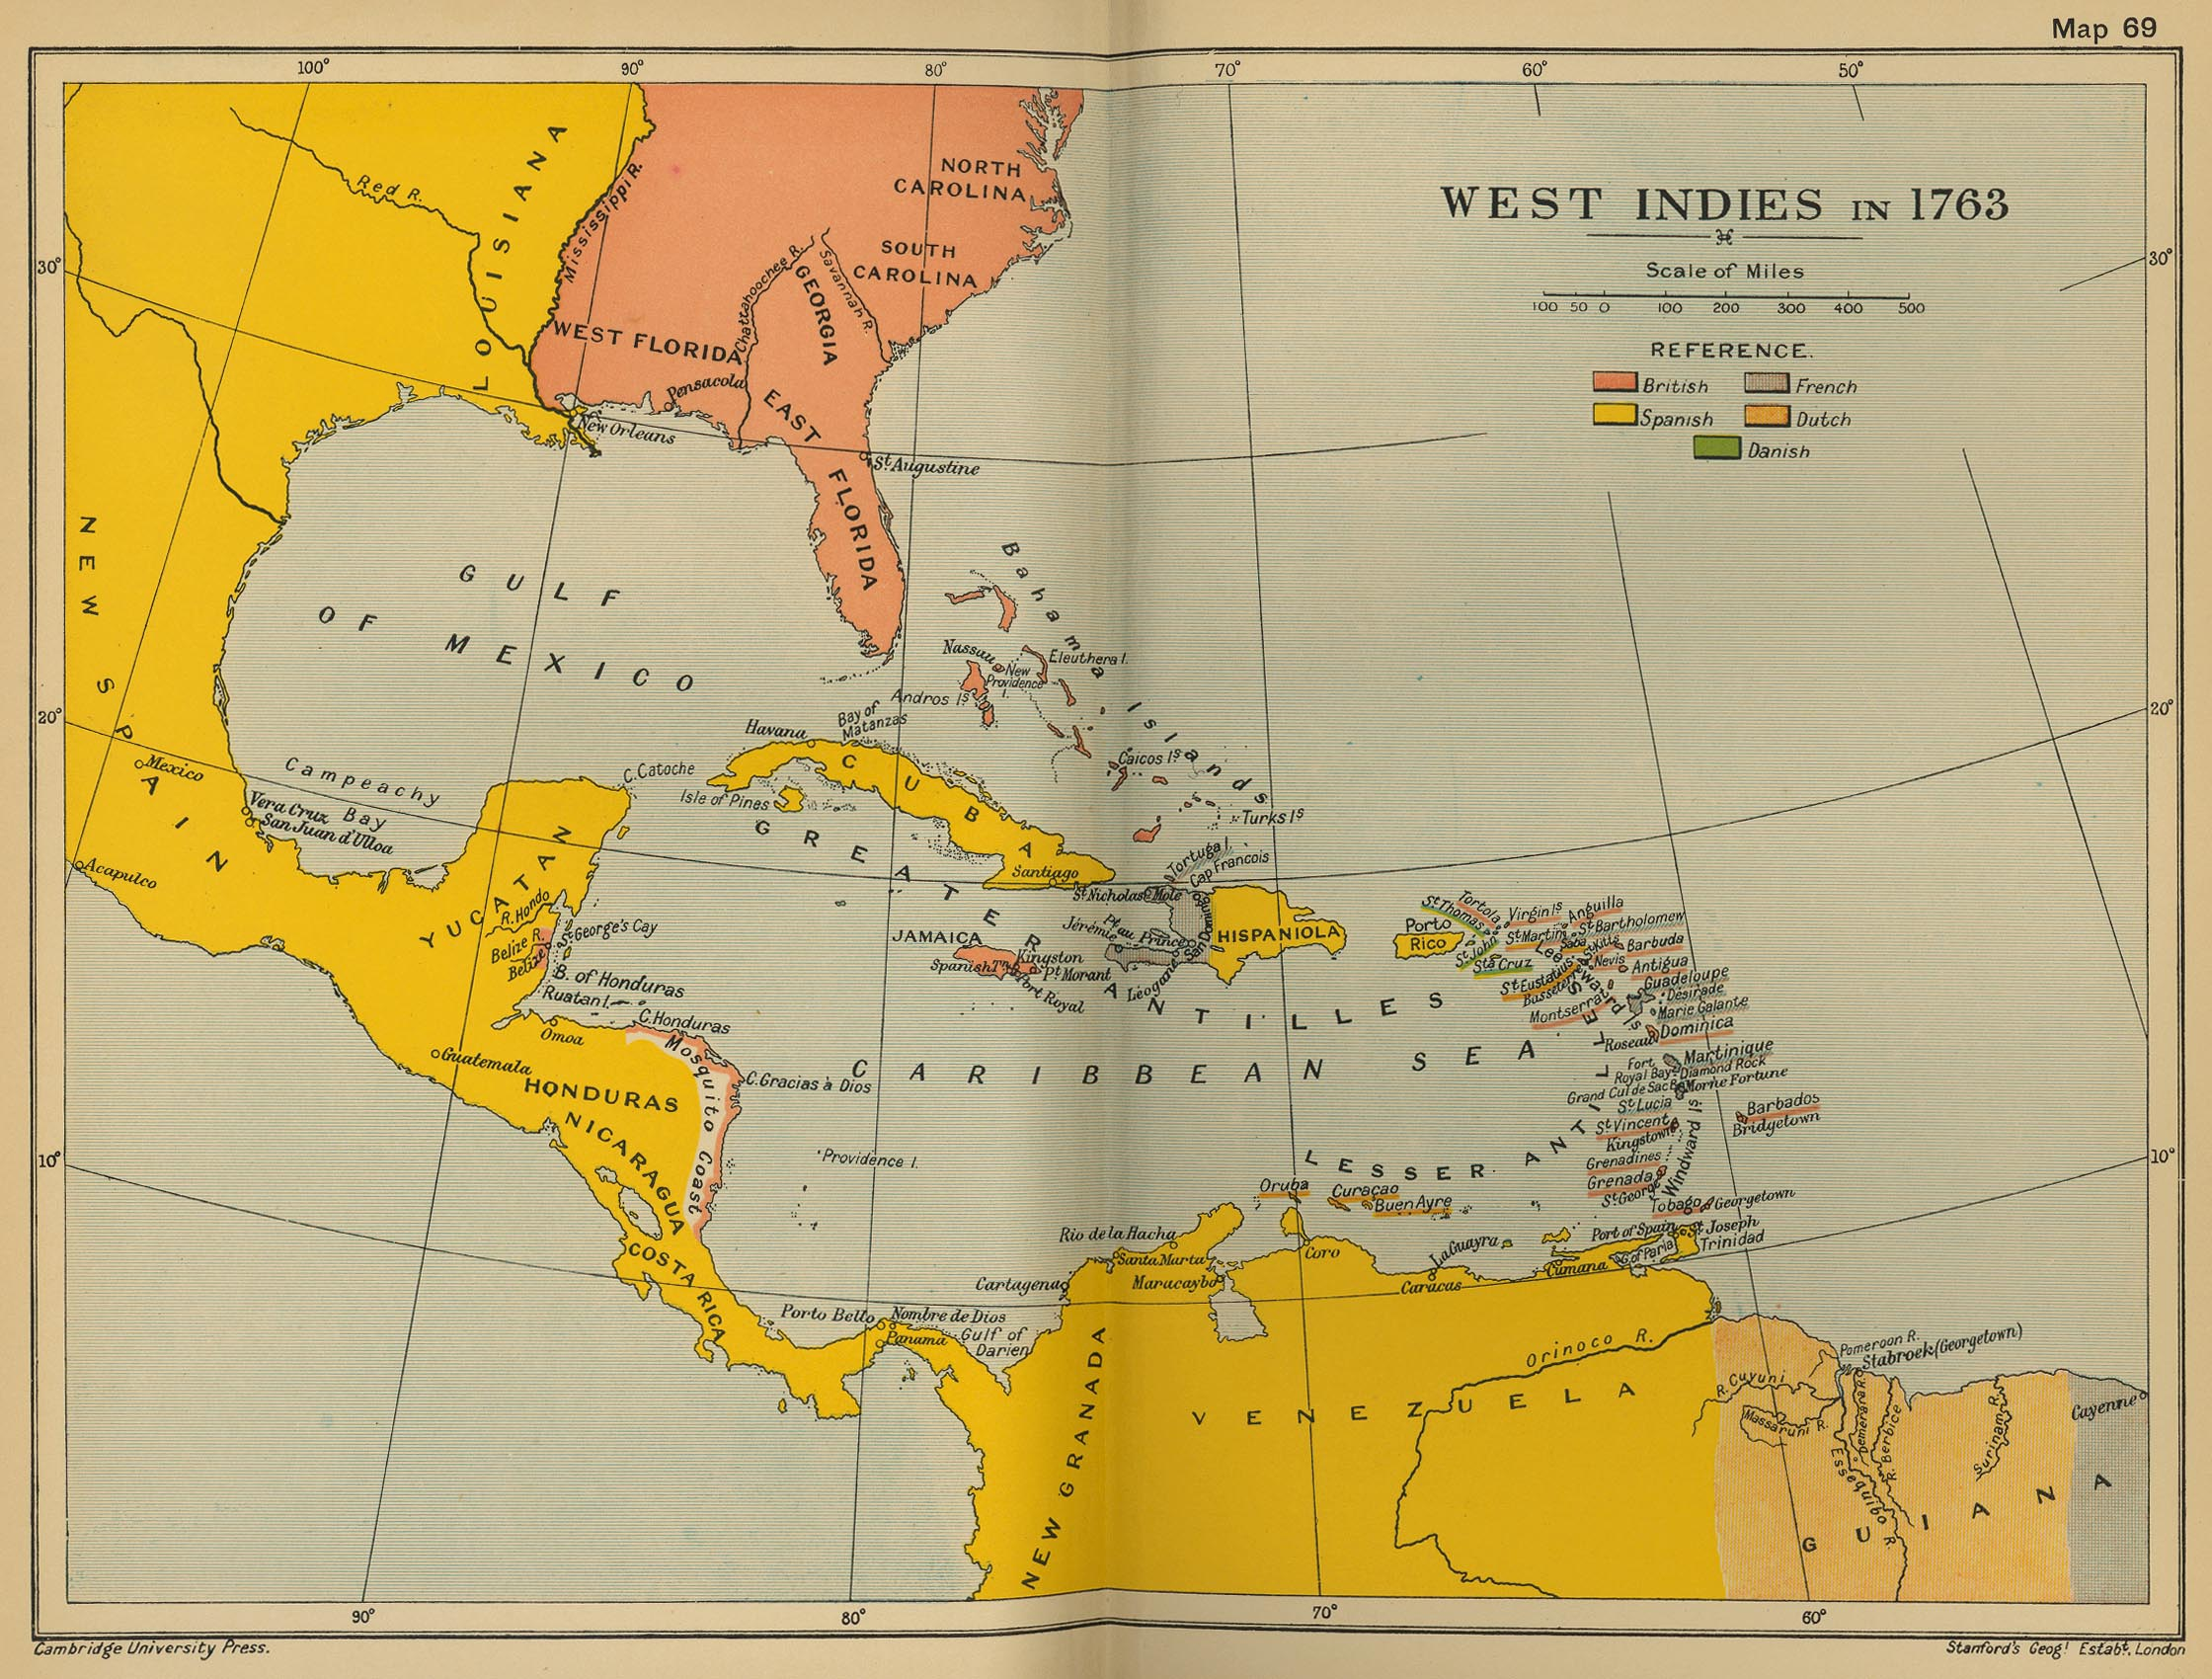 West Indies in 1763